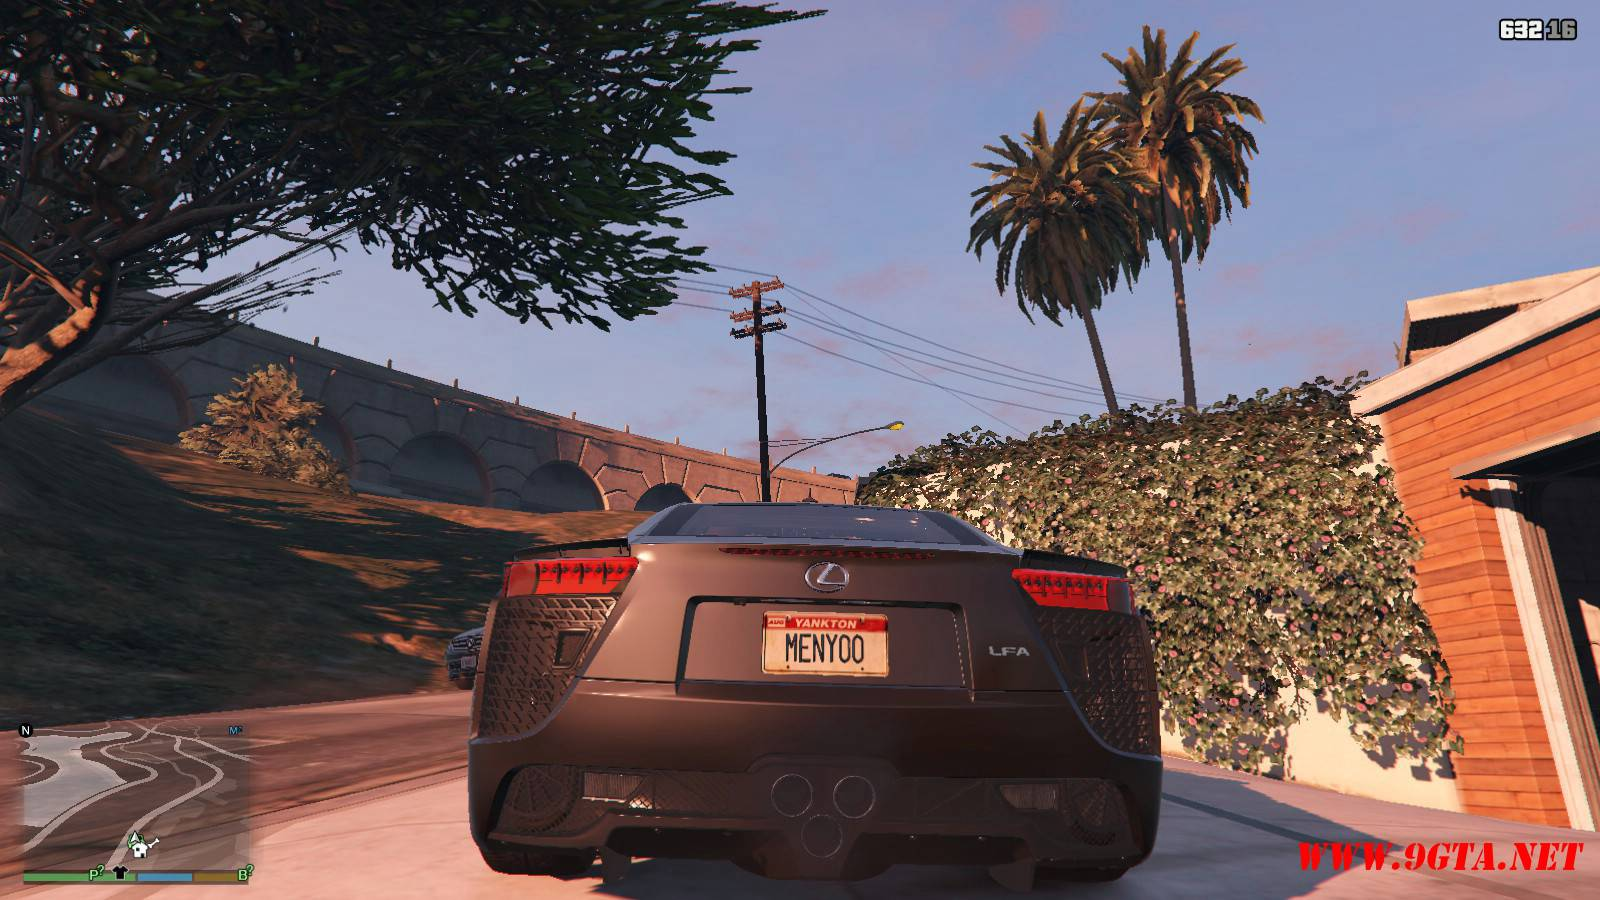 2010 Lexus LFA v2.0 Mod For GTA5 (5)